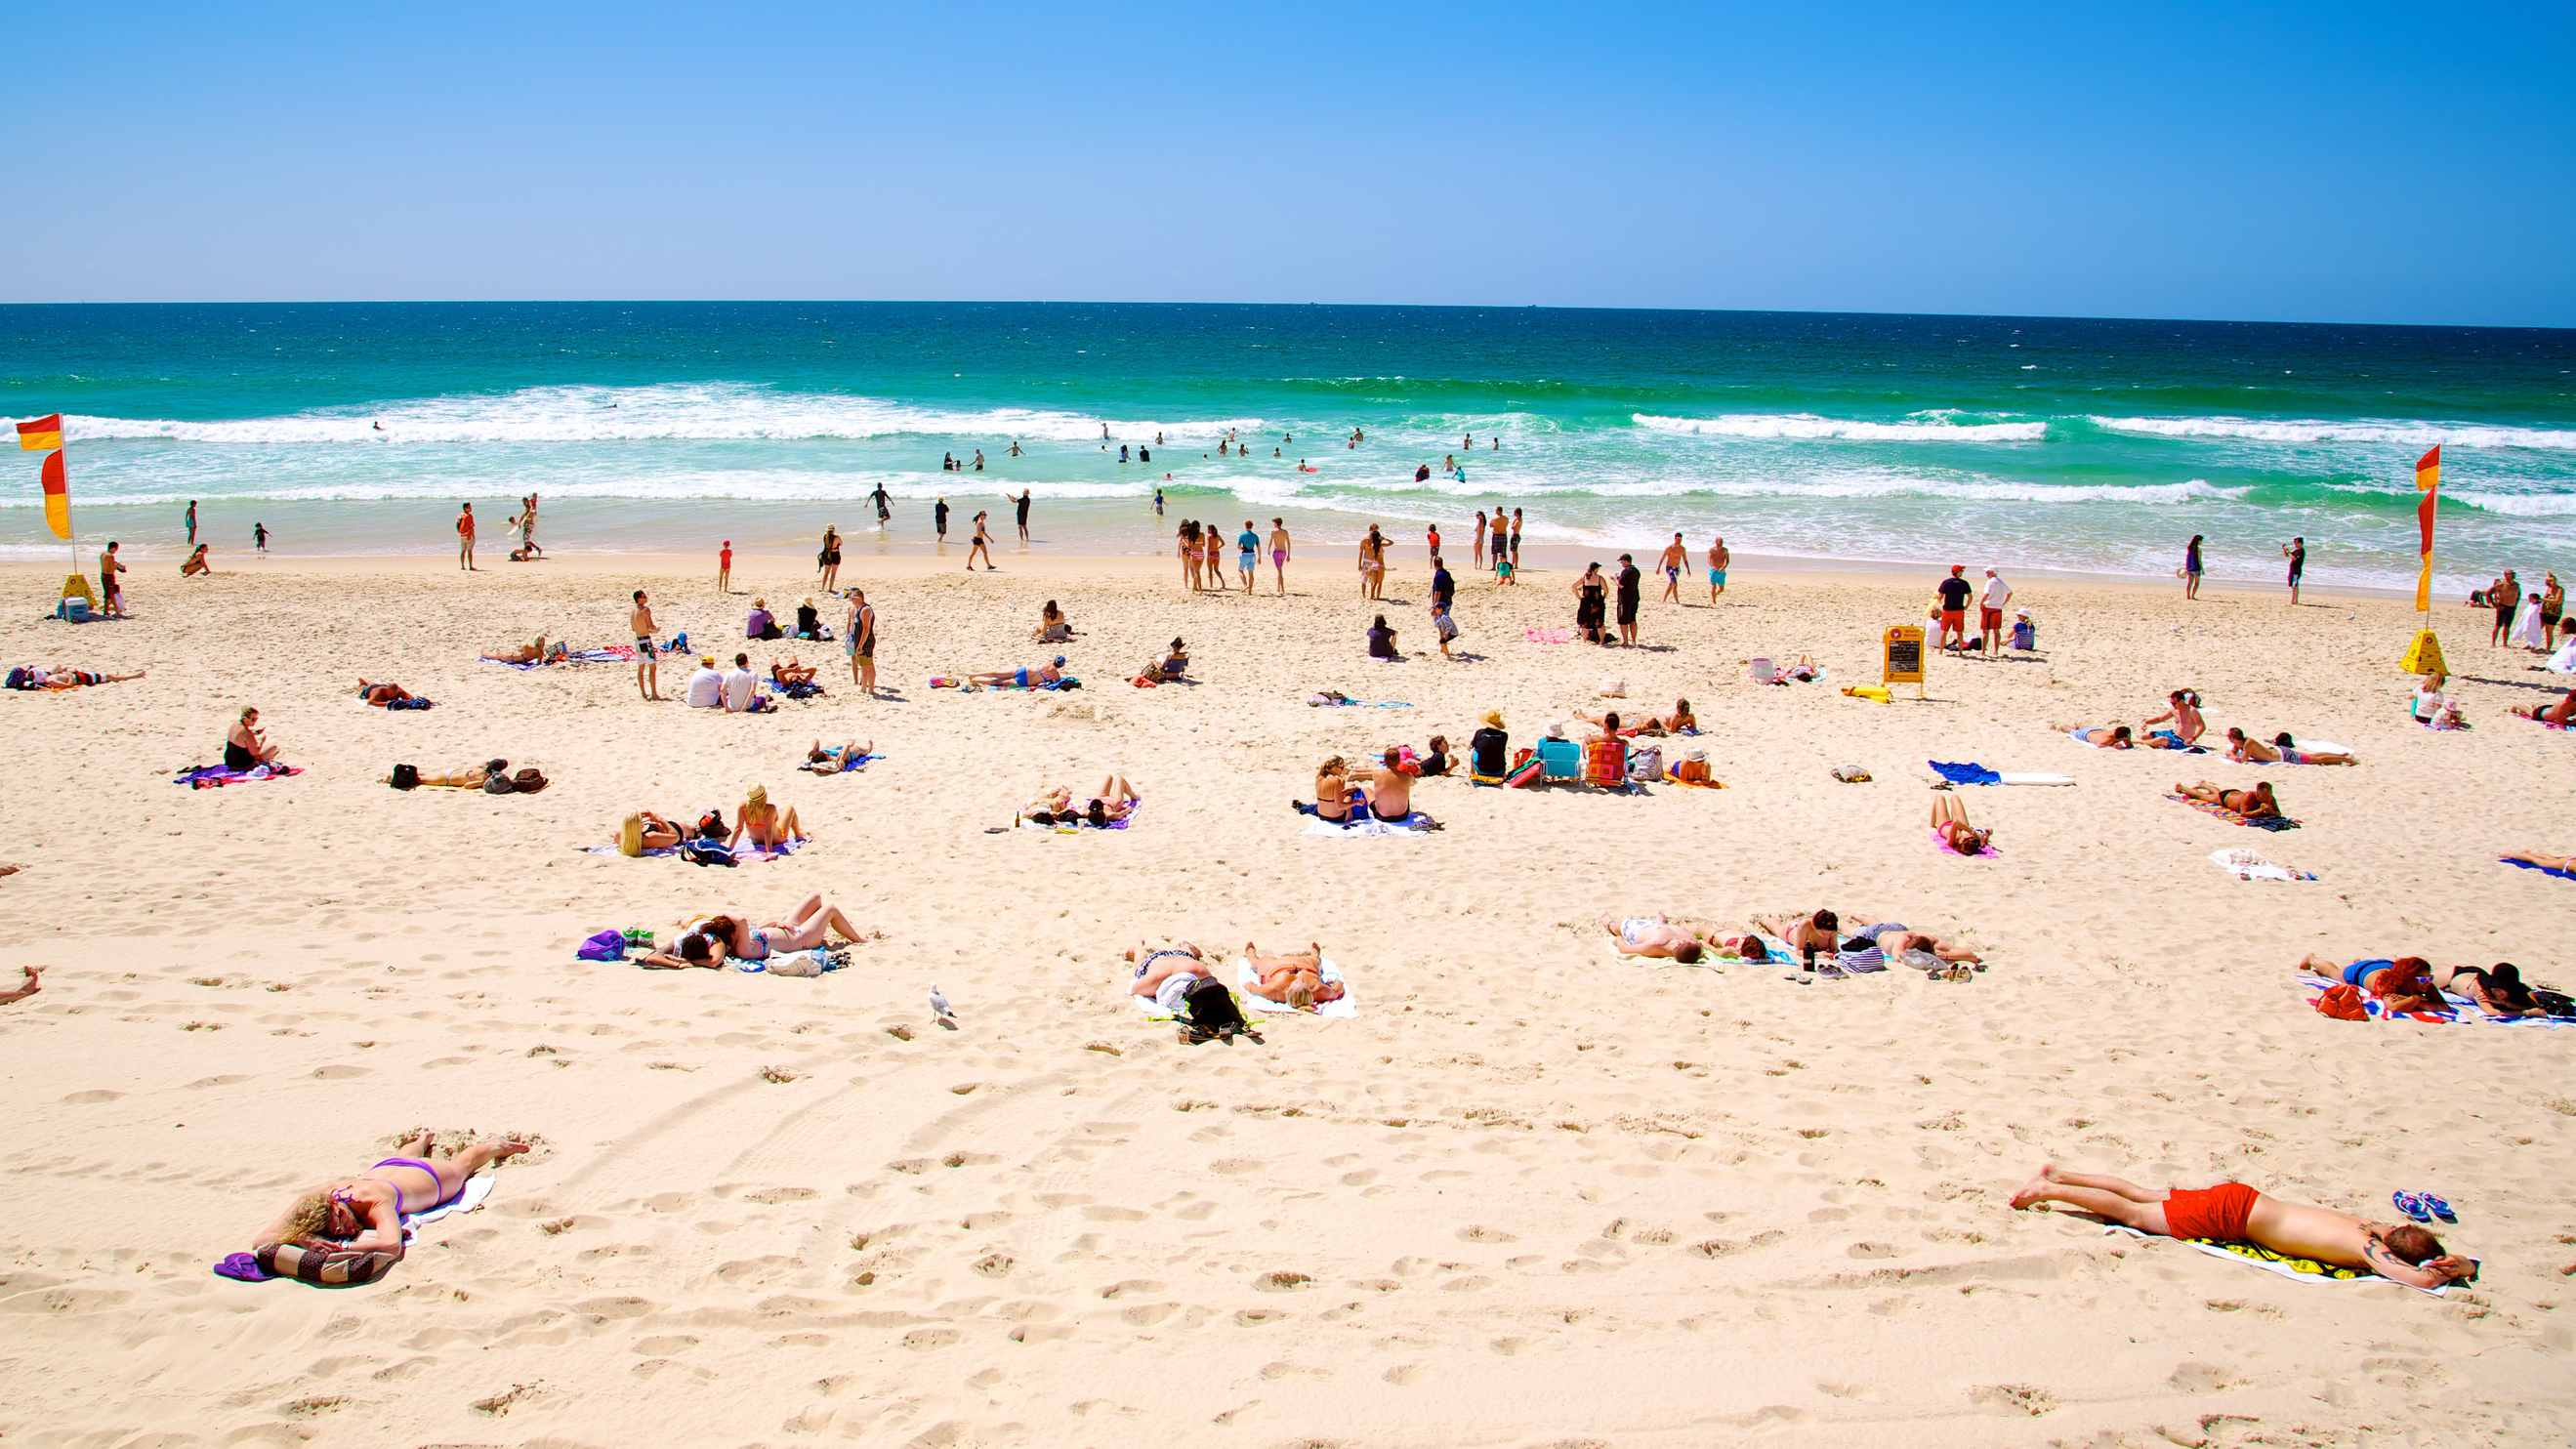 Top 10 Things To Do In Surfers Paradise from AU$18 - Activities